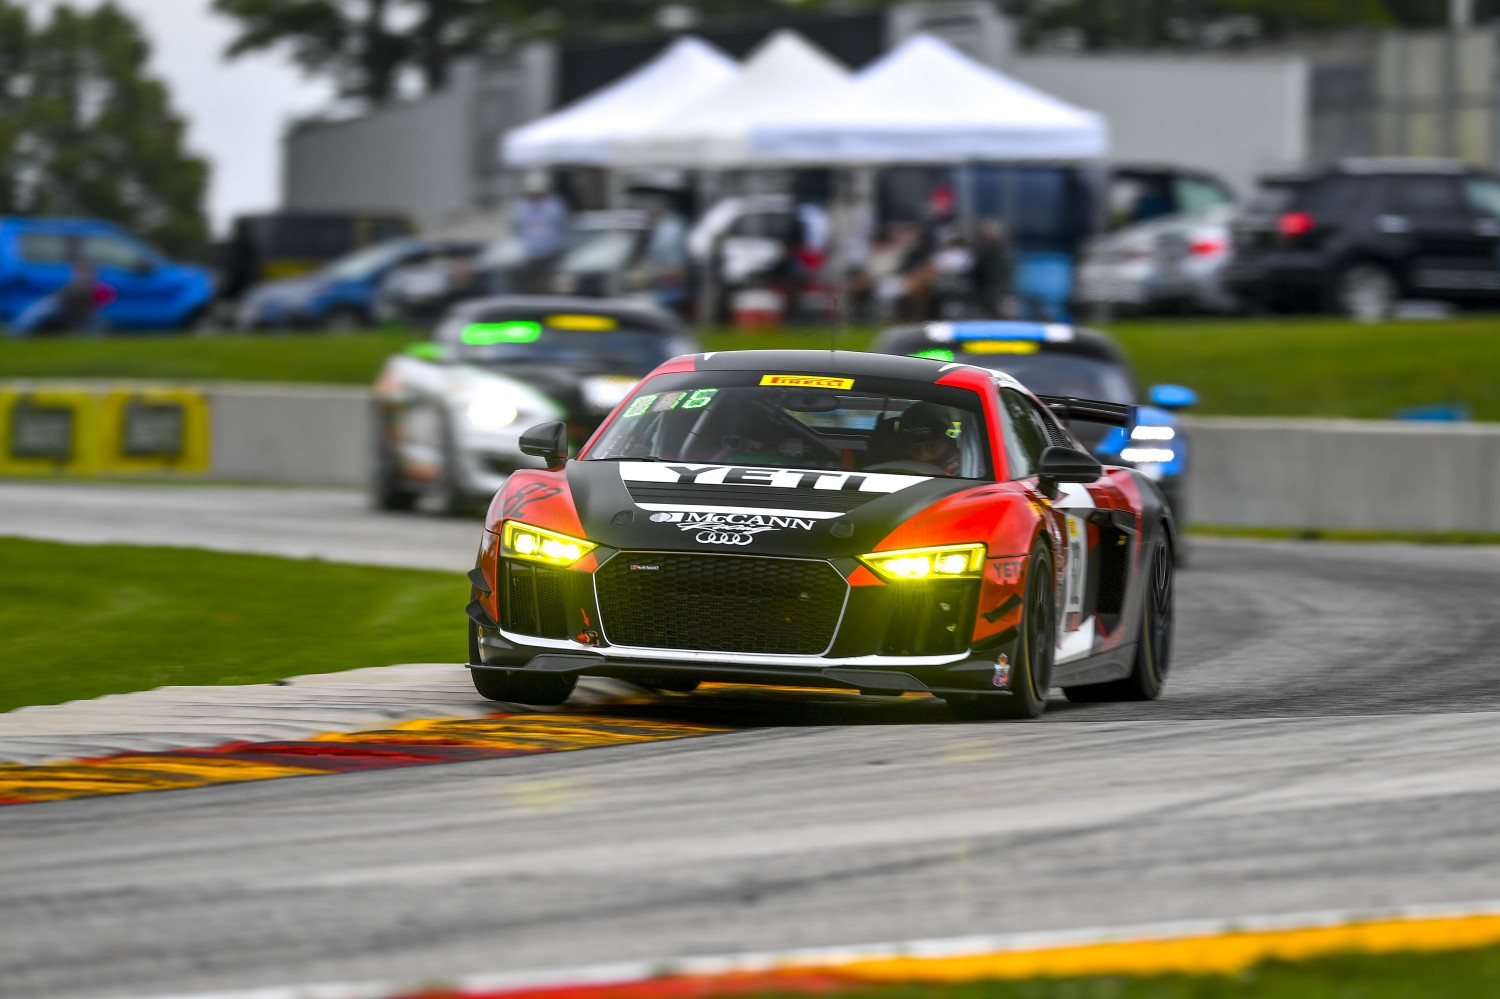 #82 Audi R8 LMS GT4 of Michael McCann Jr  with McCann Racing  Road America World Challenge America , Elkhart Lake WI | Gavin Baker/SRO